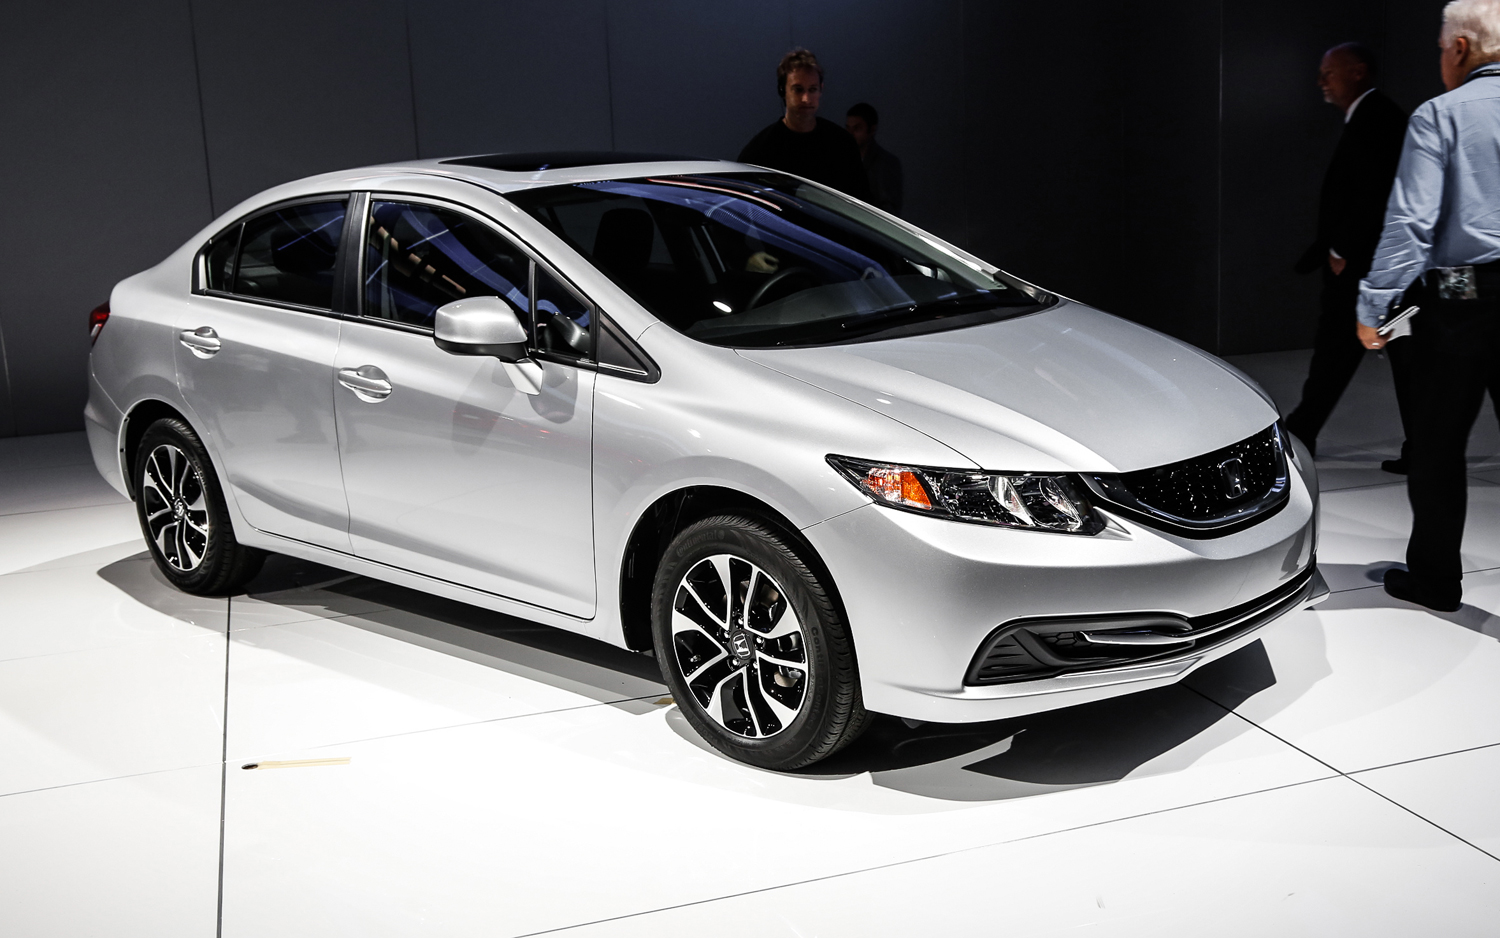 Honda Civic #28